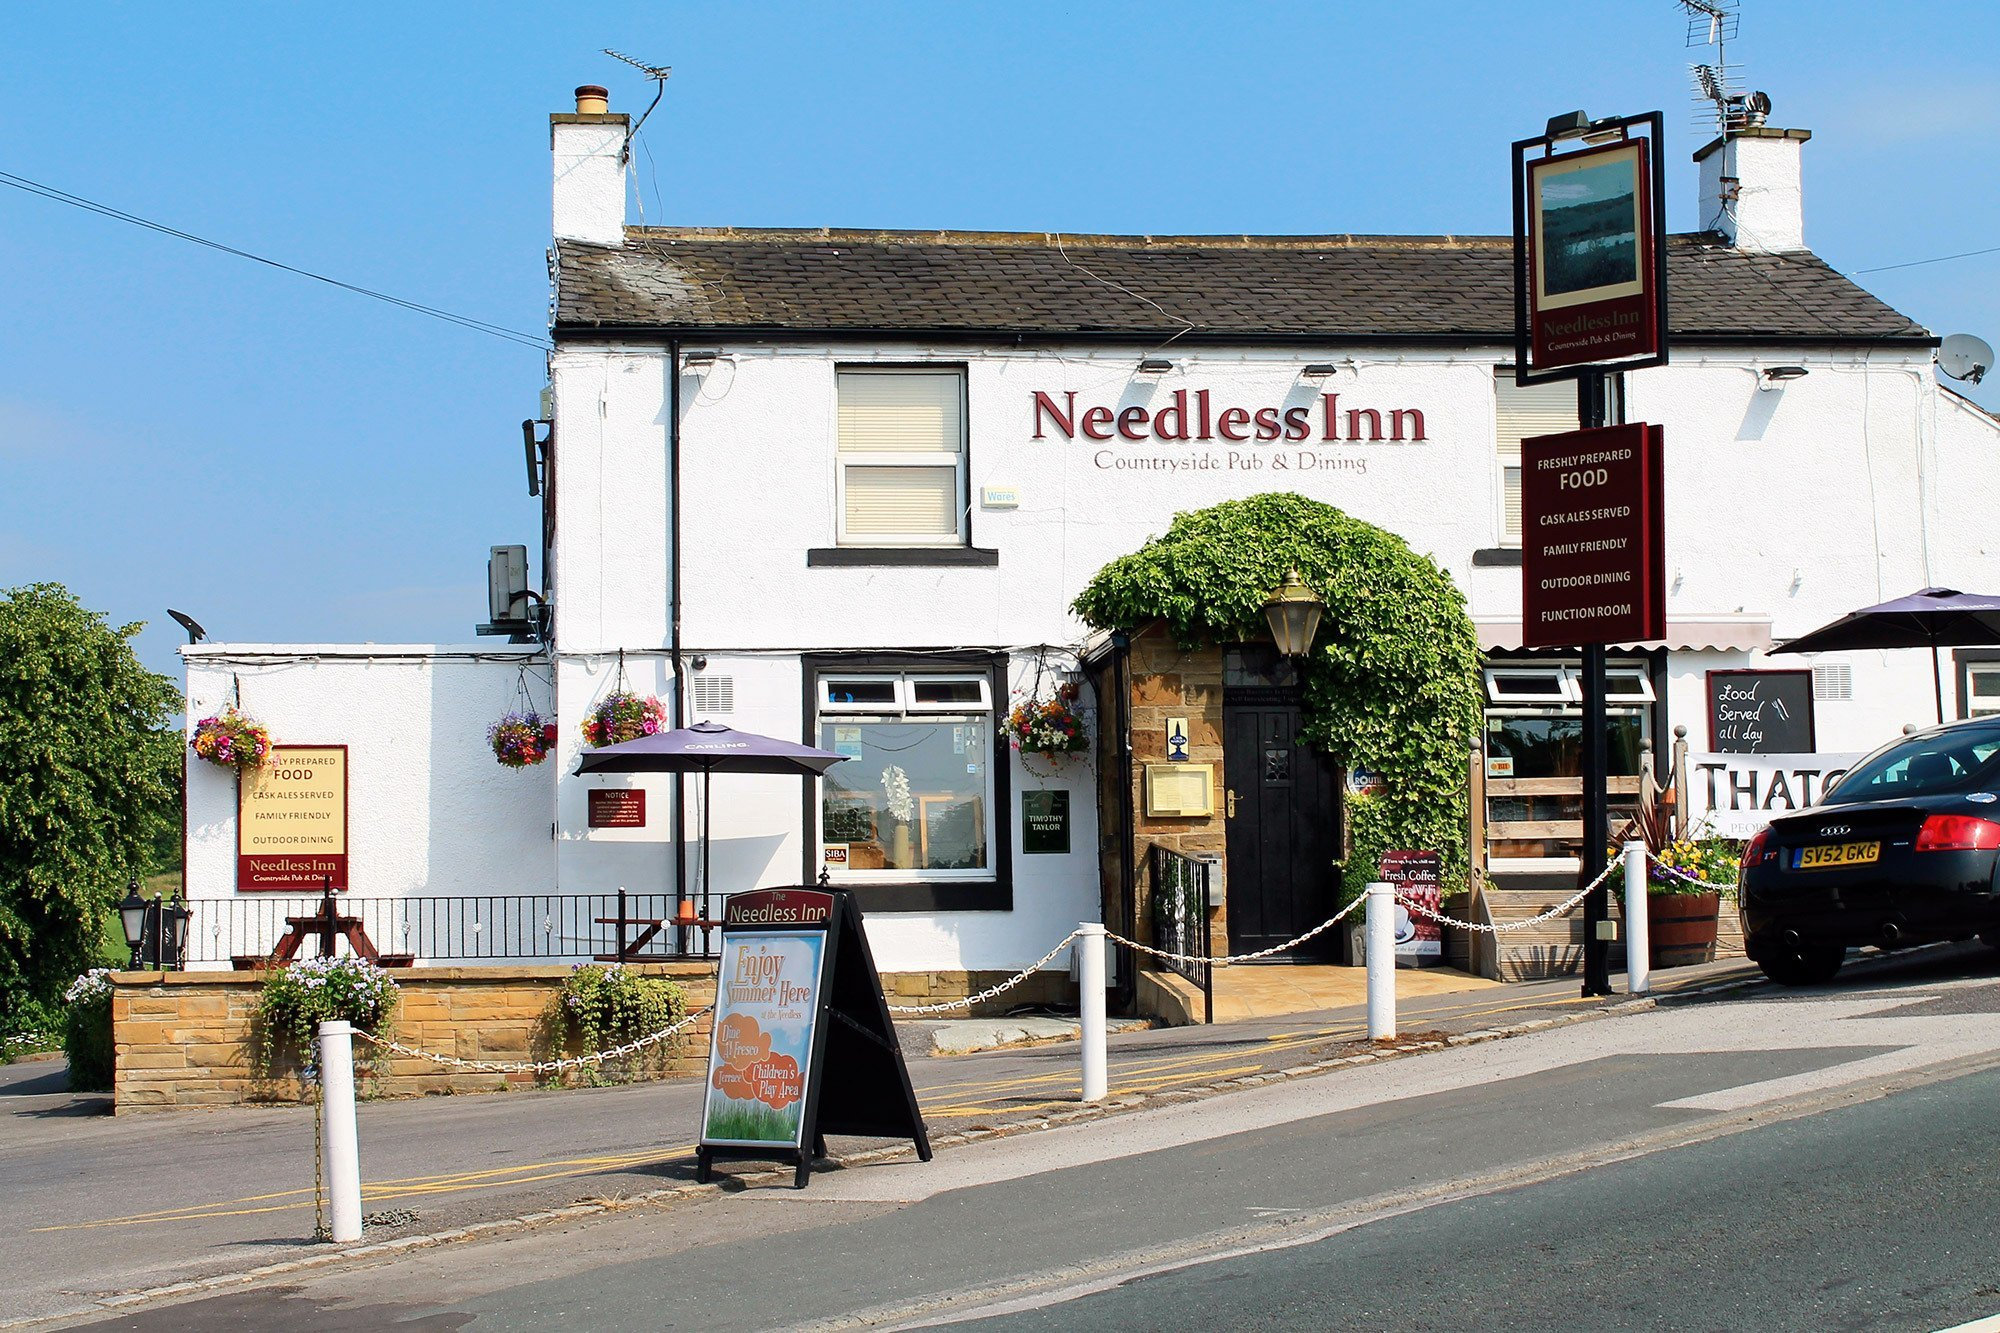 Entrance view of the Needless inn